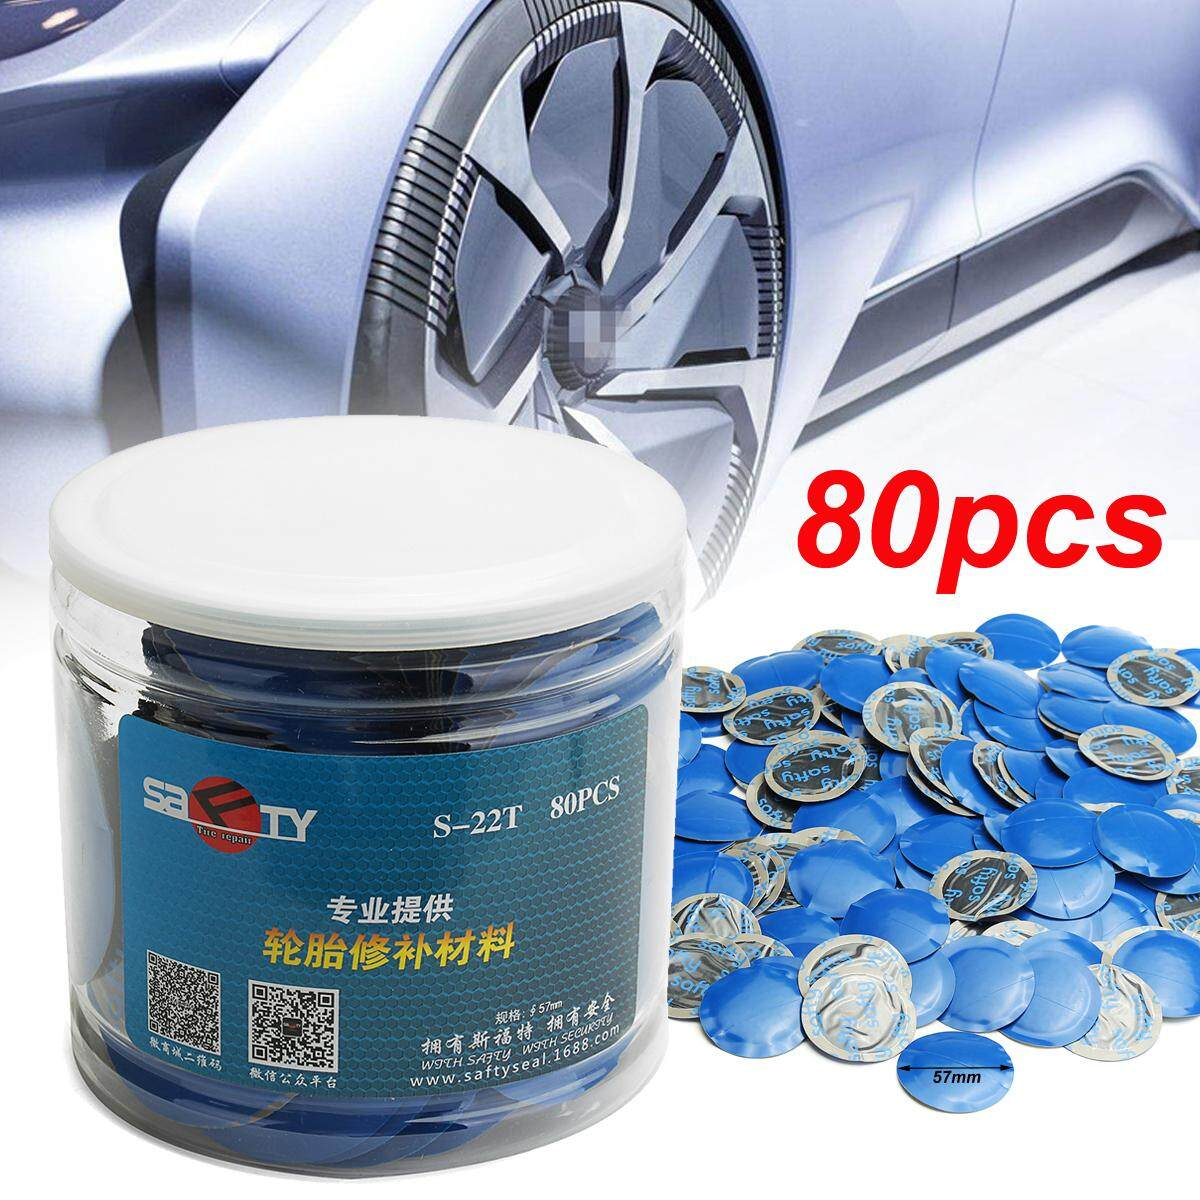 Universal 80pcs 57mm Natural Rubber Wired Tyre Puncture Repair Mushroom Patch By Haldis.